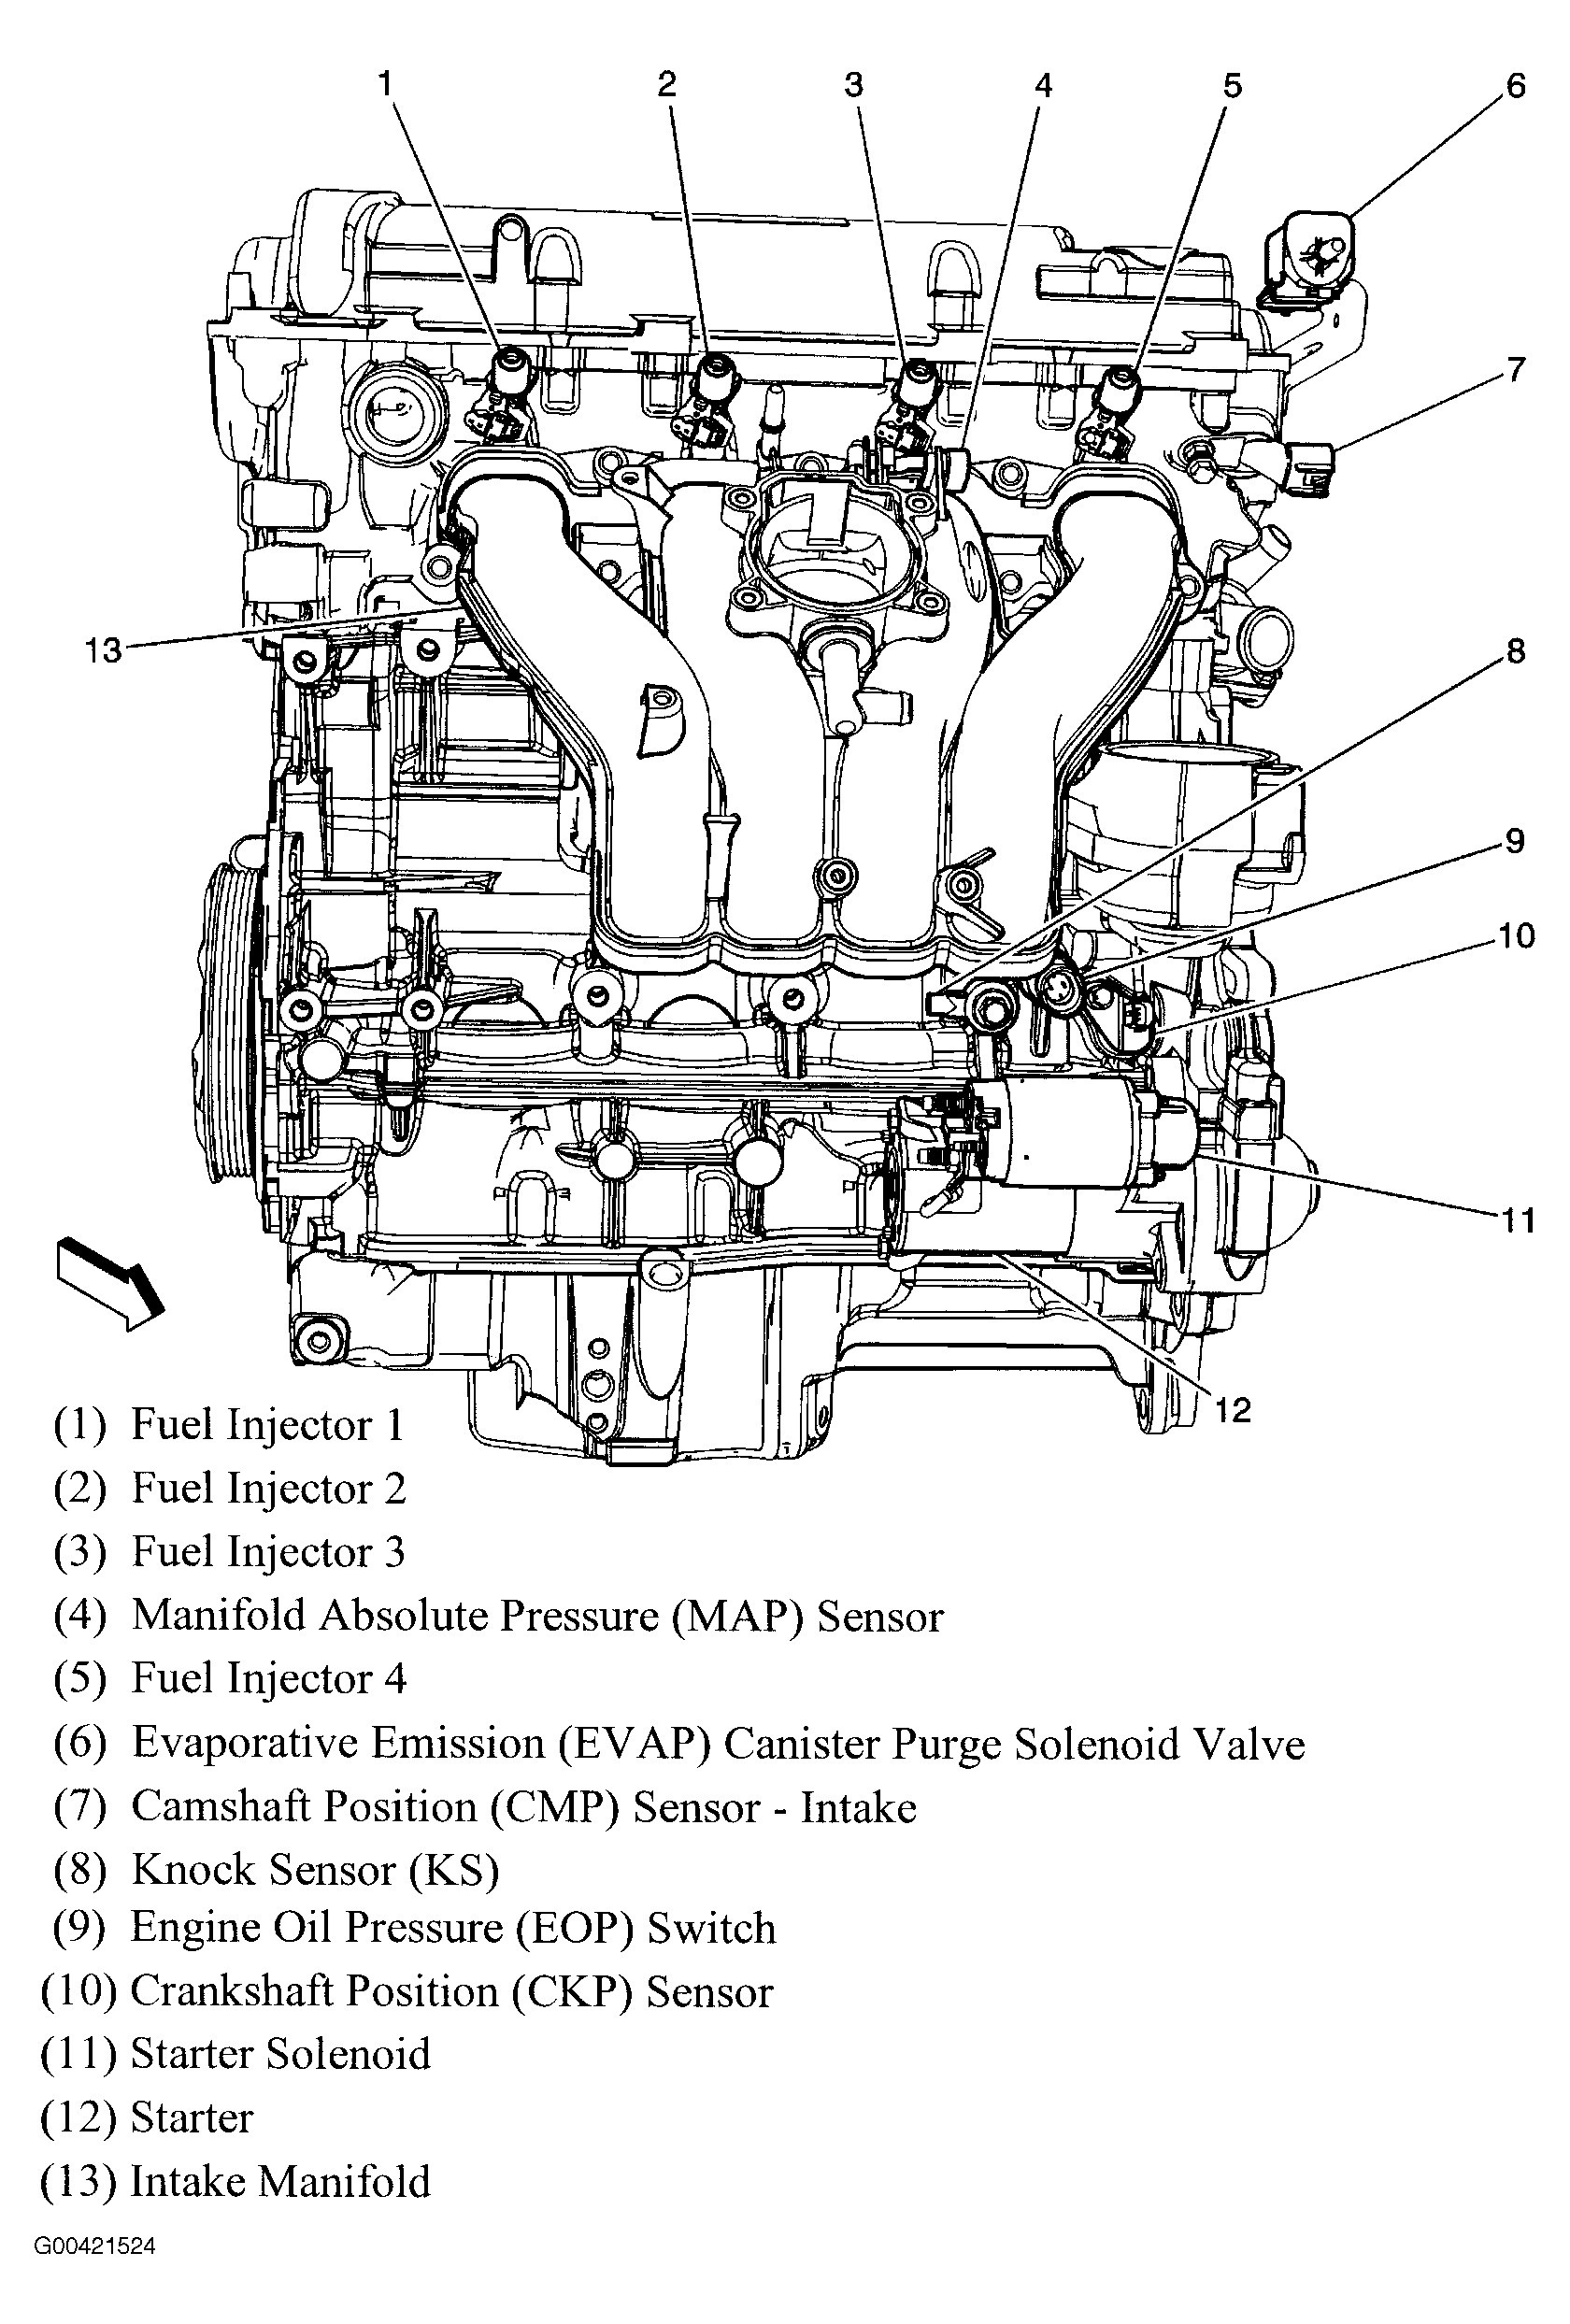 hight resolution of camaro engine diagram wiring diagram world 2002 camaro engine diagram wiring diagram expert 2011 camaro engine